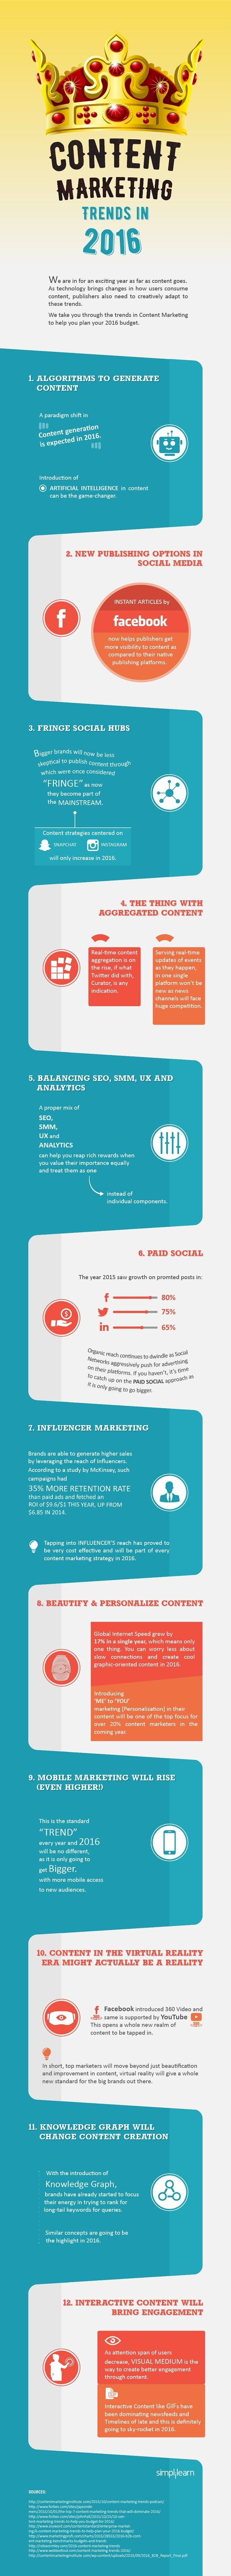 Content Marketing Trends in 2016 [Infographic] - @marketingprofs